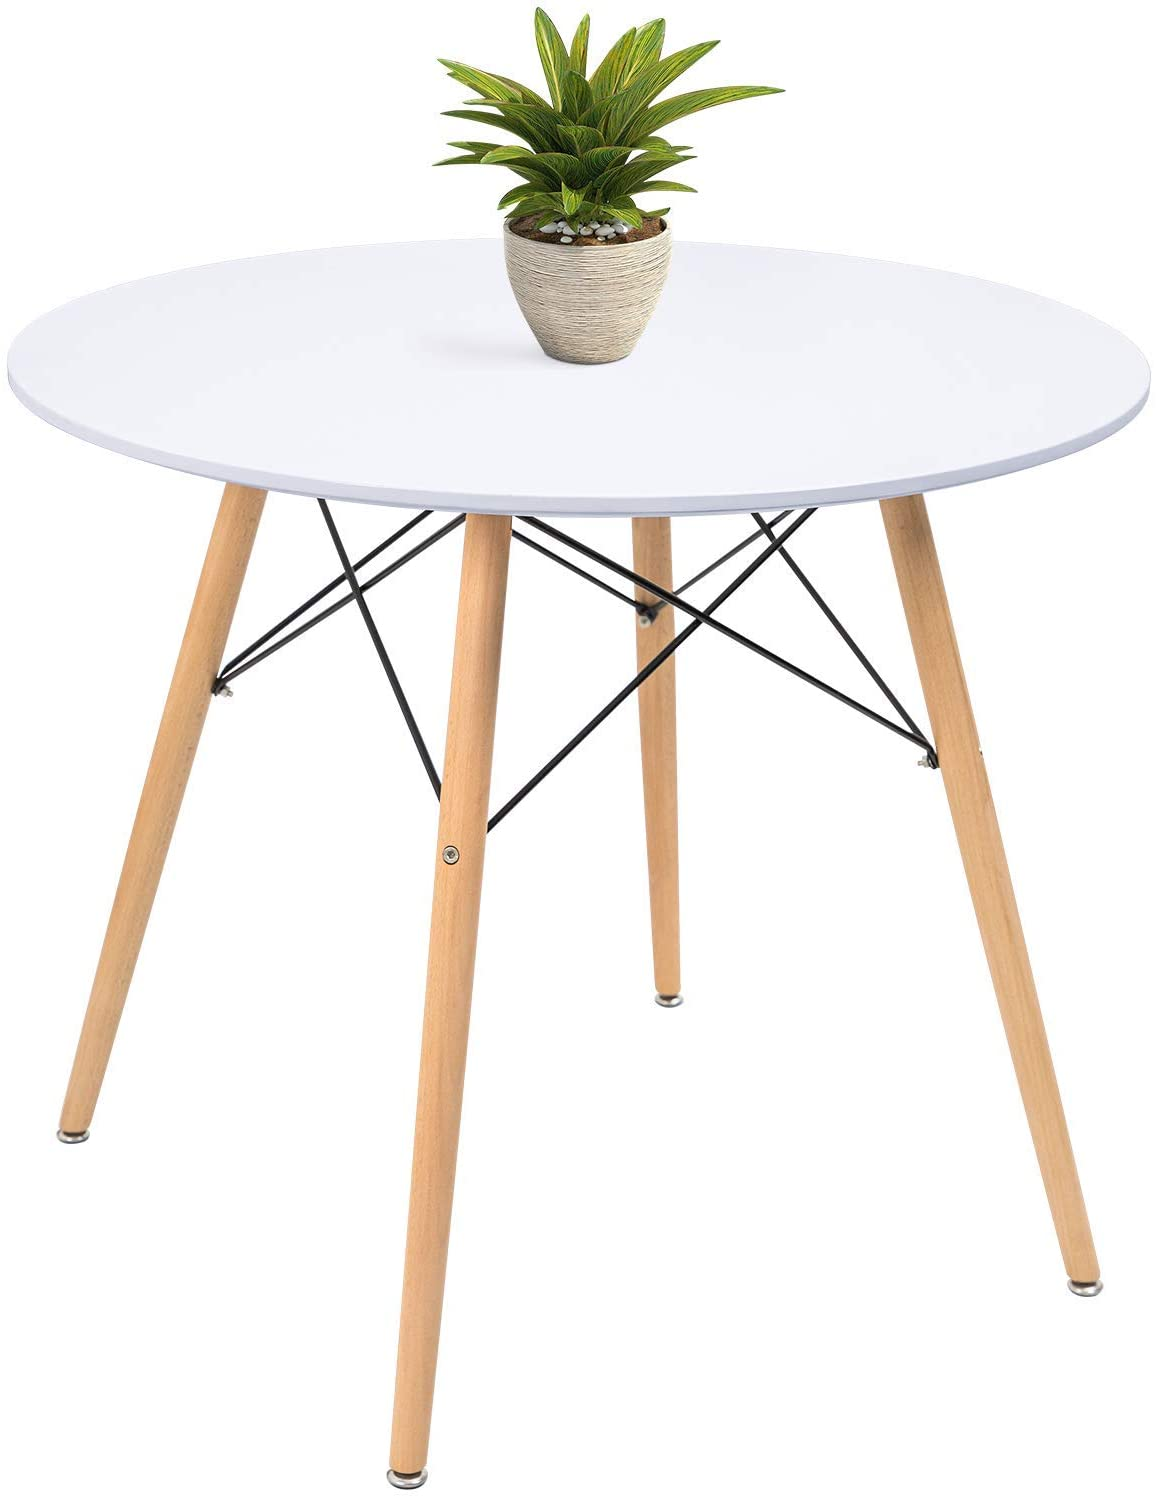 Amazon Com Kaimeng White Round Dining Table 32 Modern Pedestal Small Circle Room Table Leisure Tea Coffee Kitchen Table White Tables